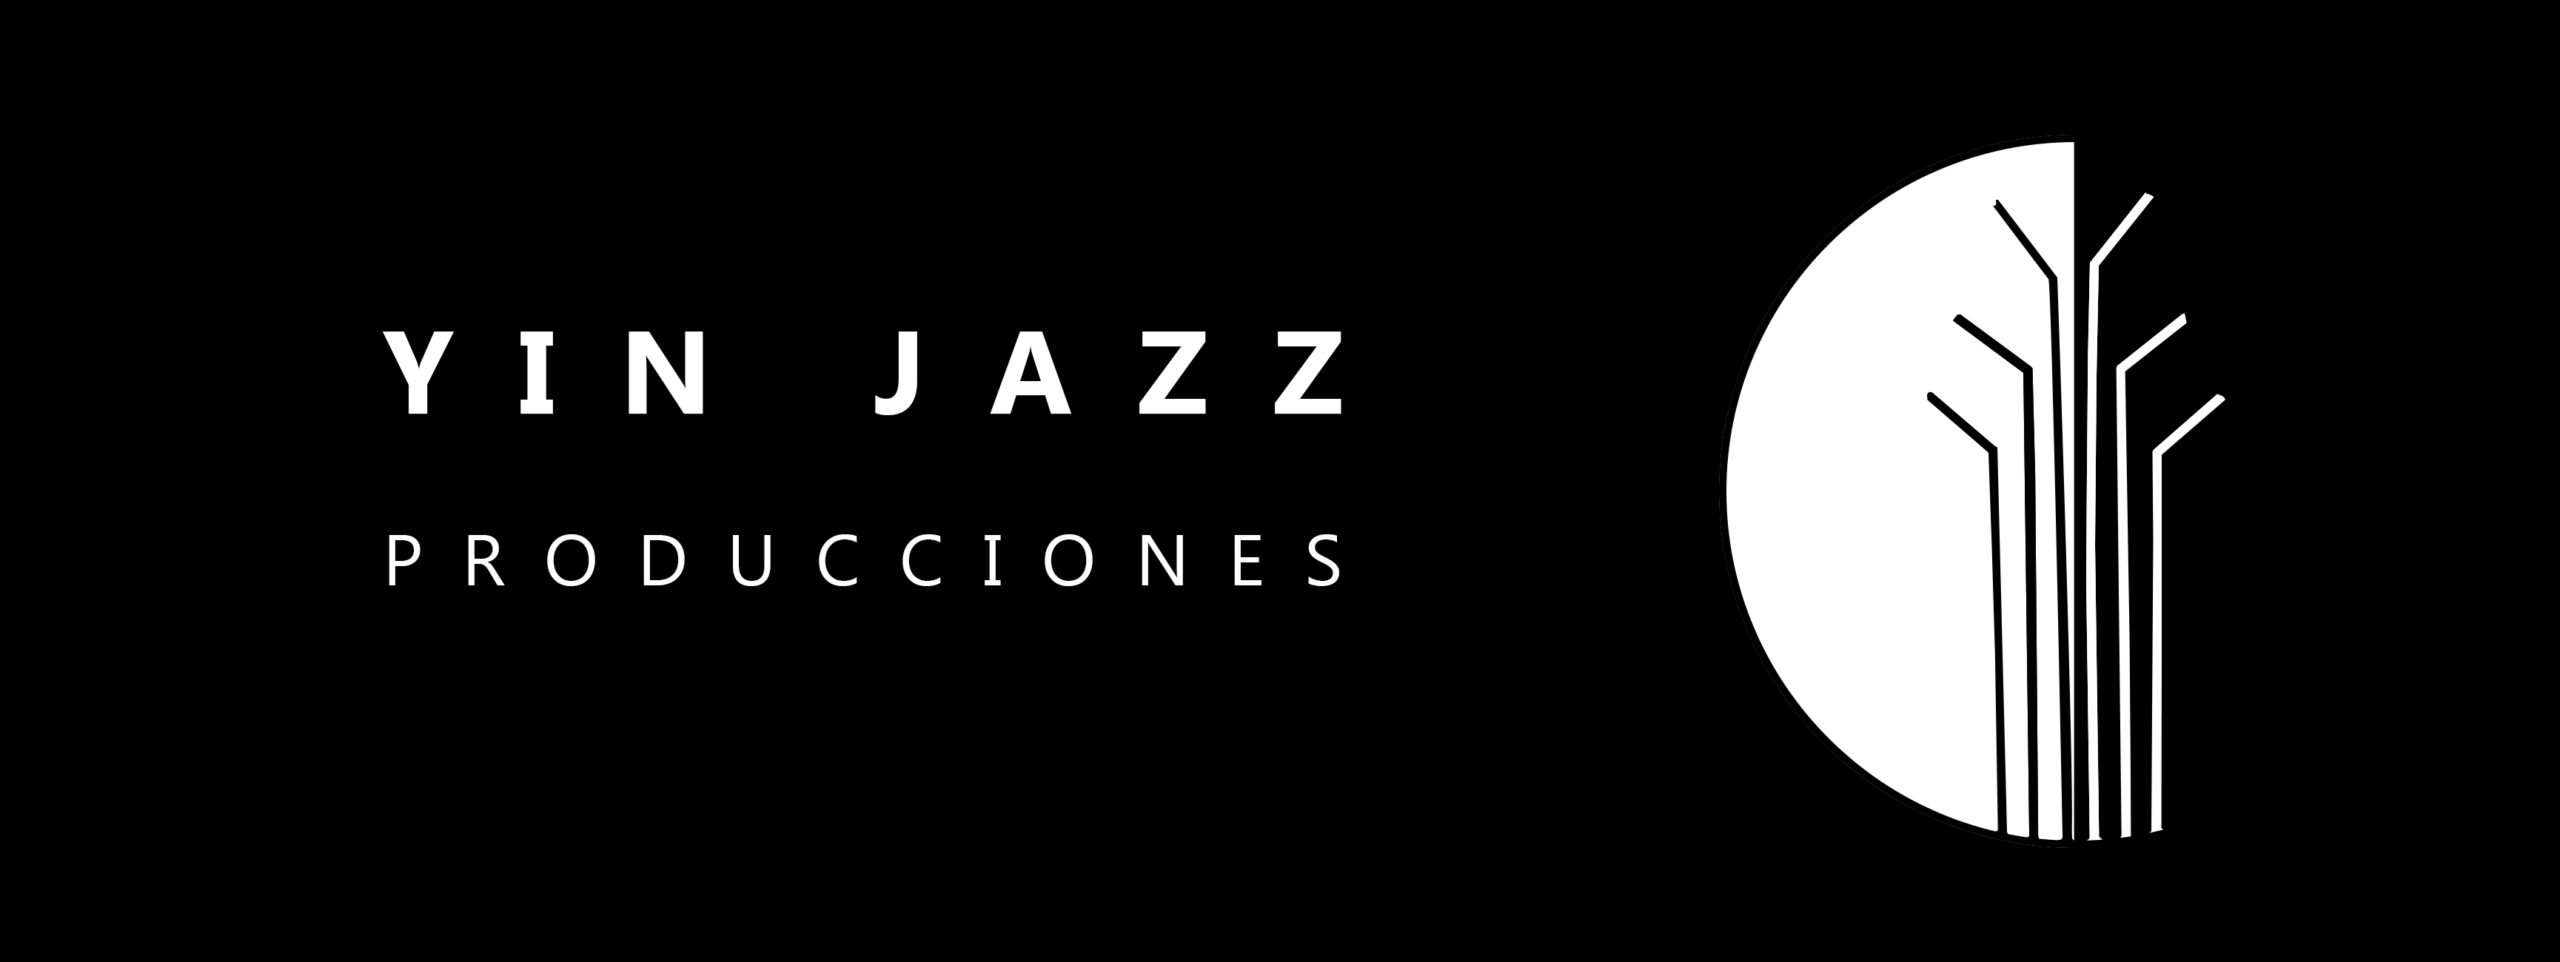 Sounds From Spain - YinJazz Producciones